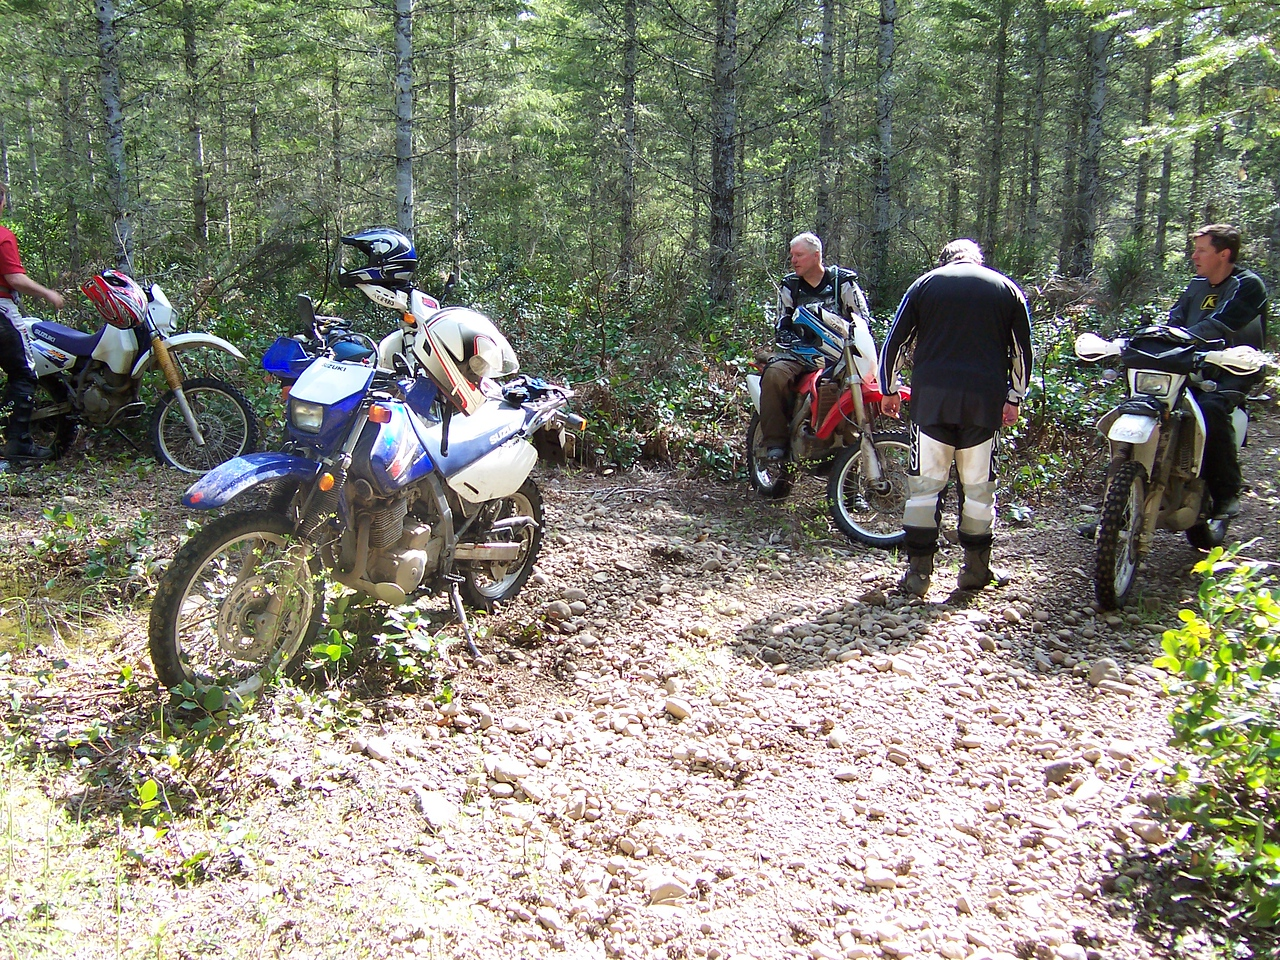 Bill took us on some great trails